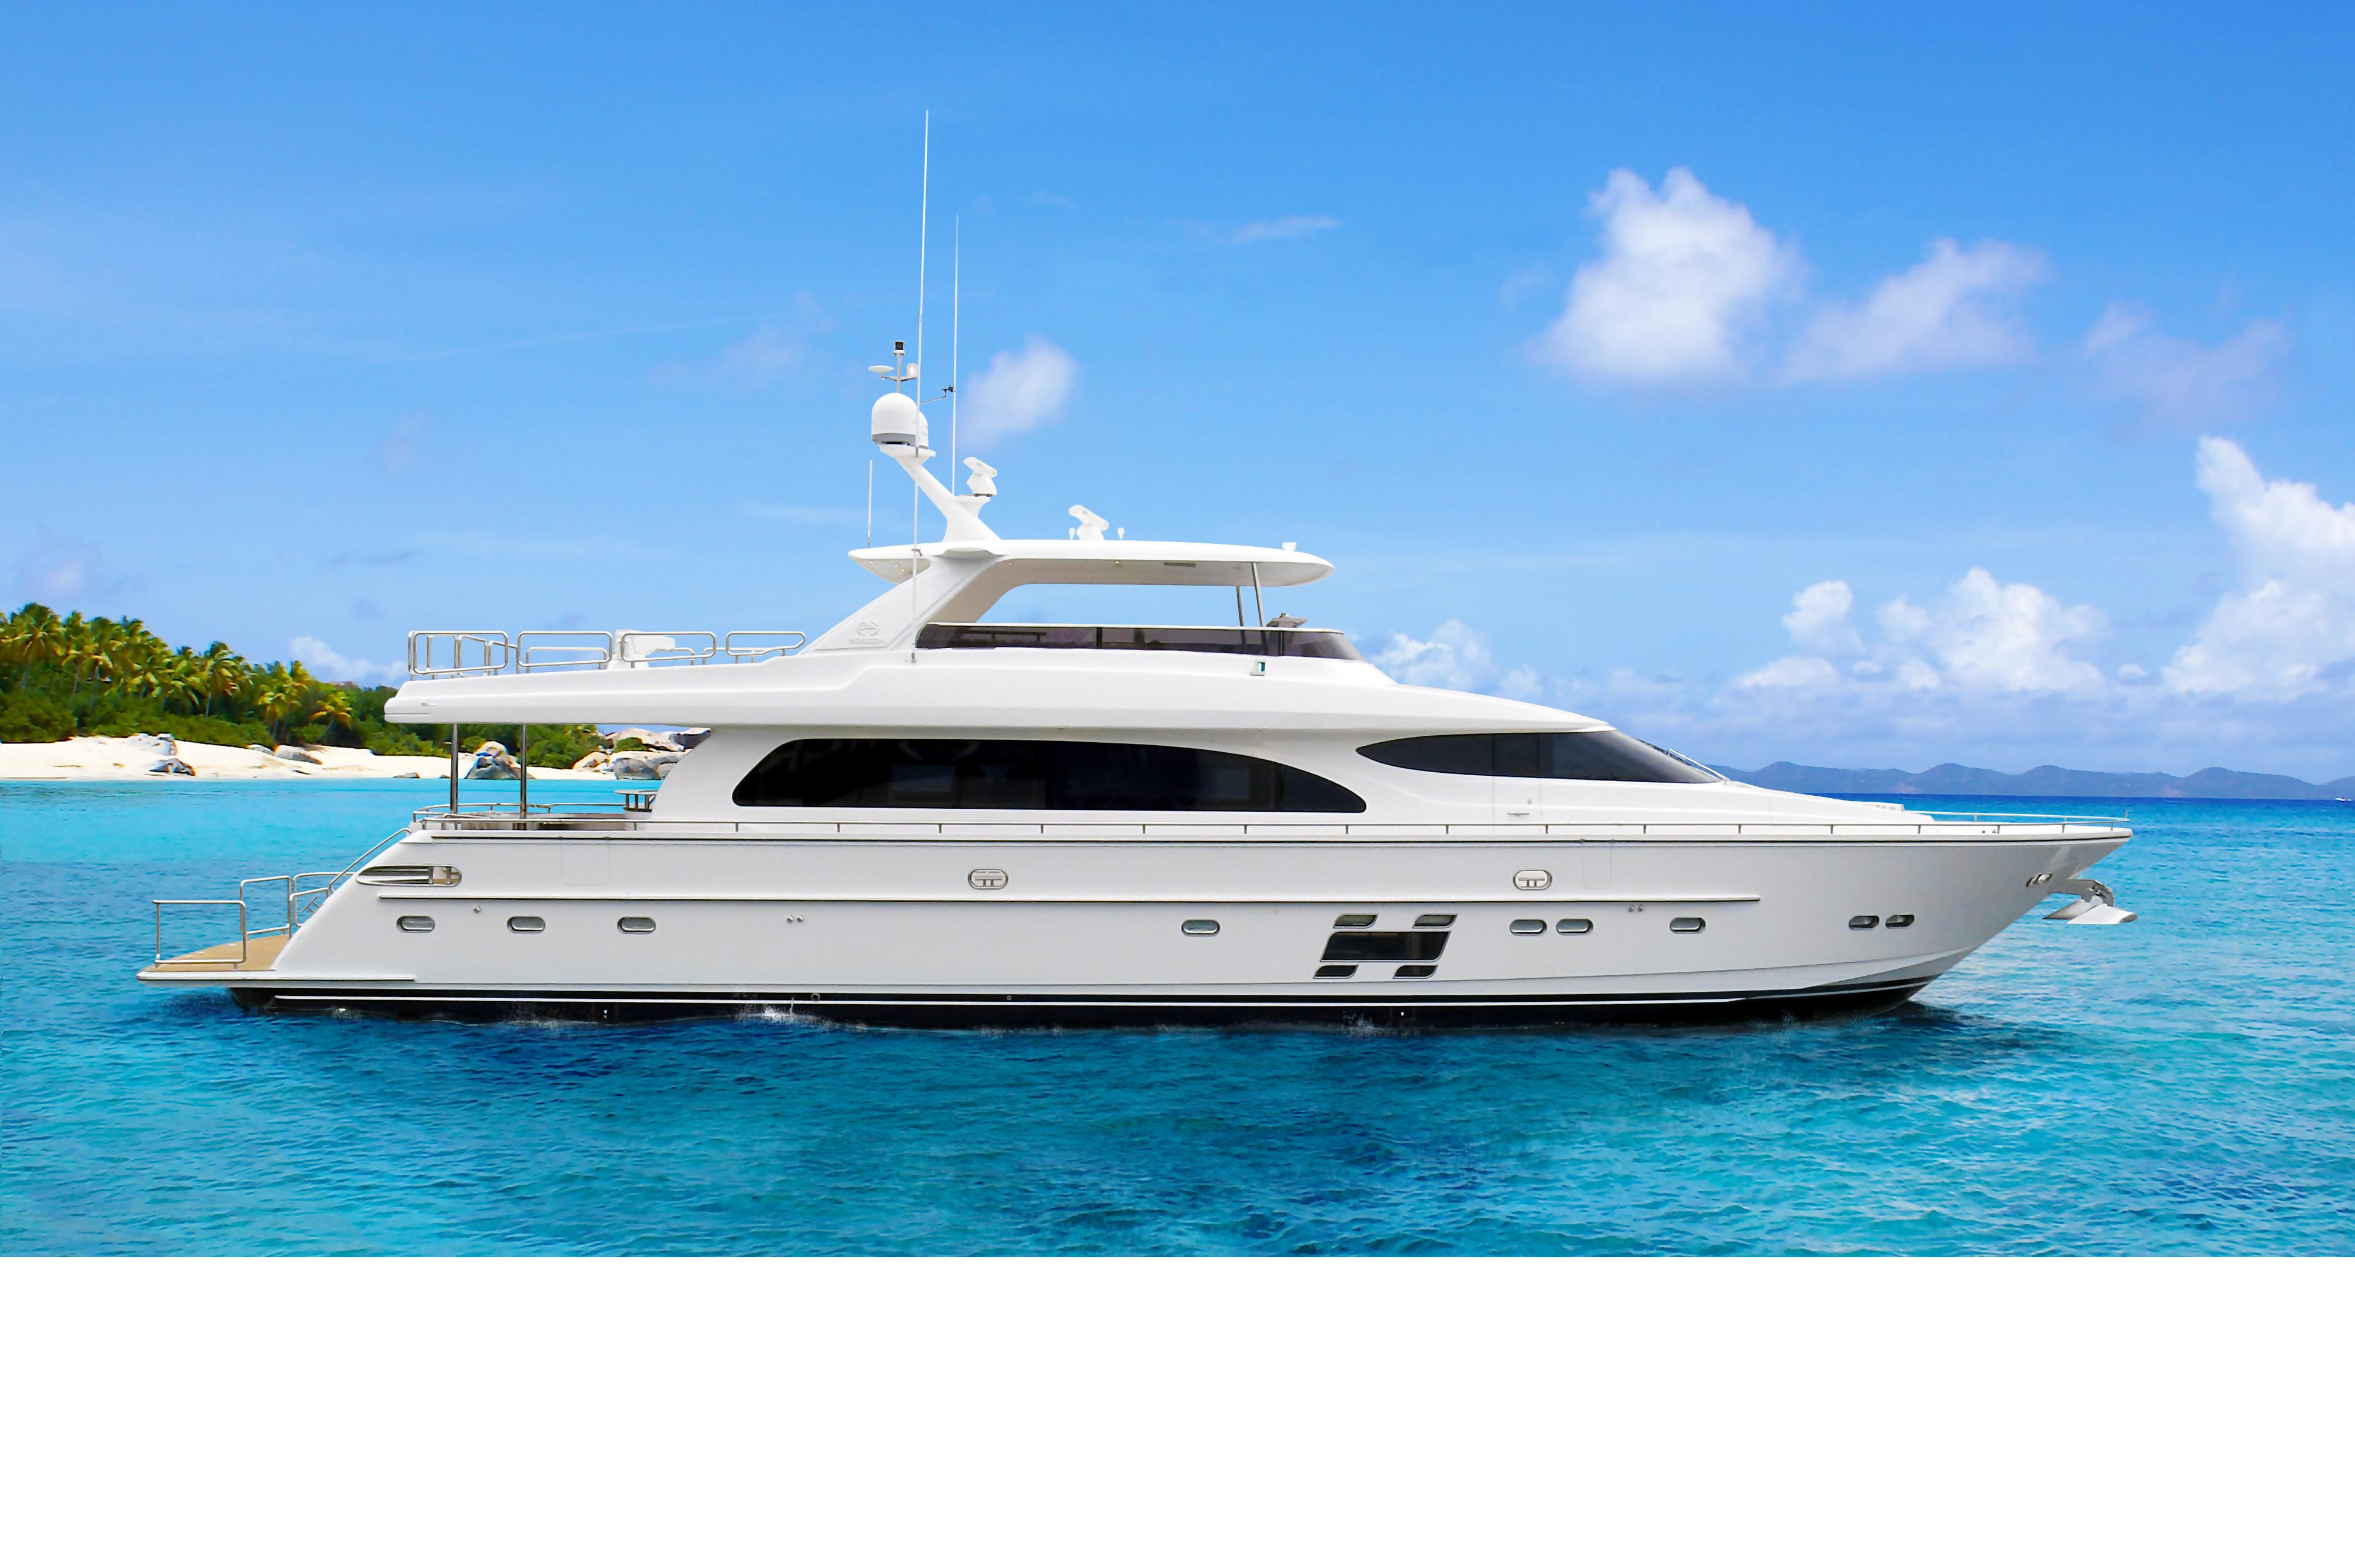 2019 85 ft Yacht For Sale | Allied Marine